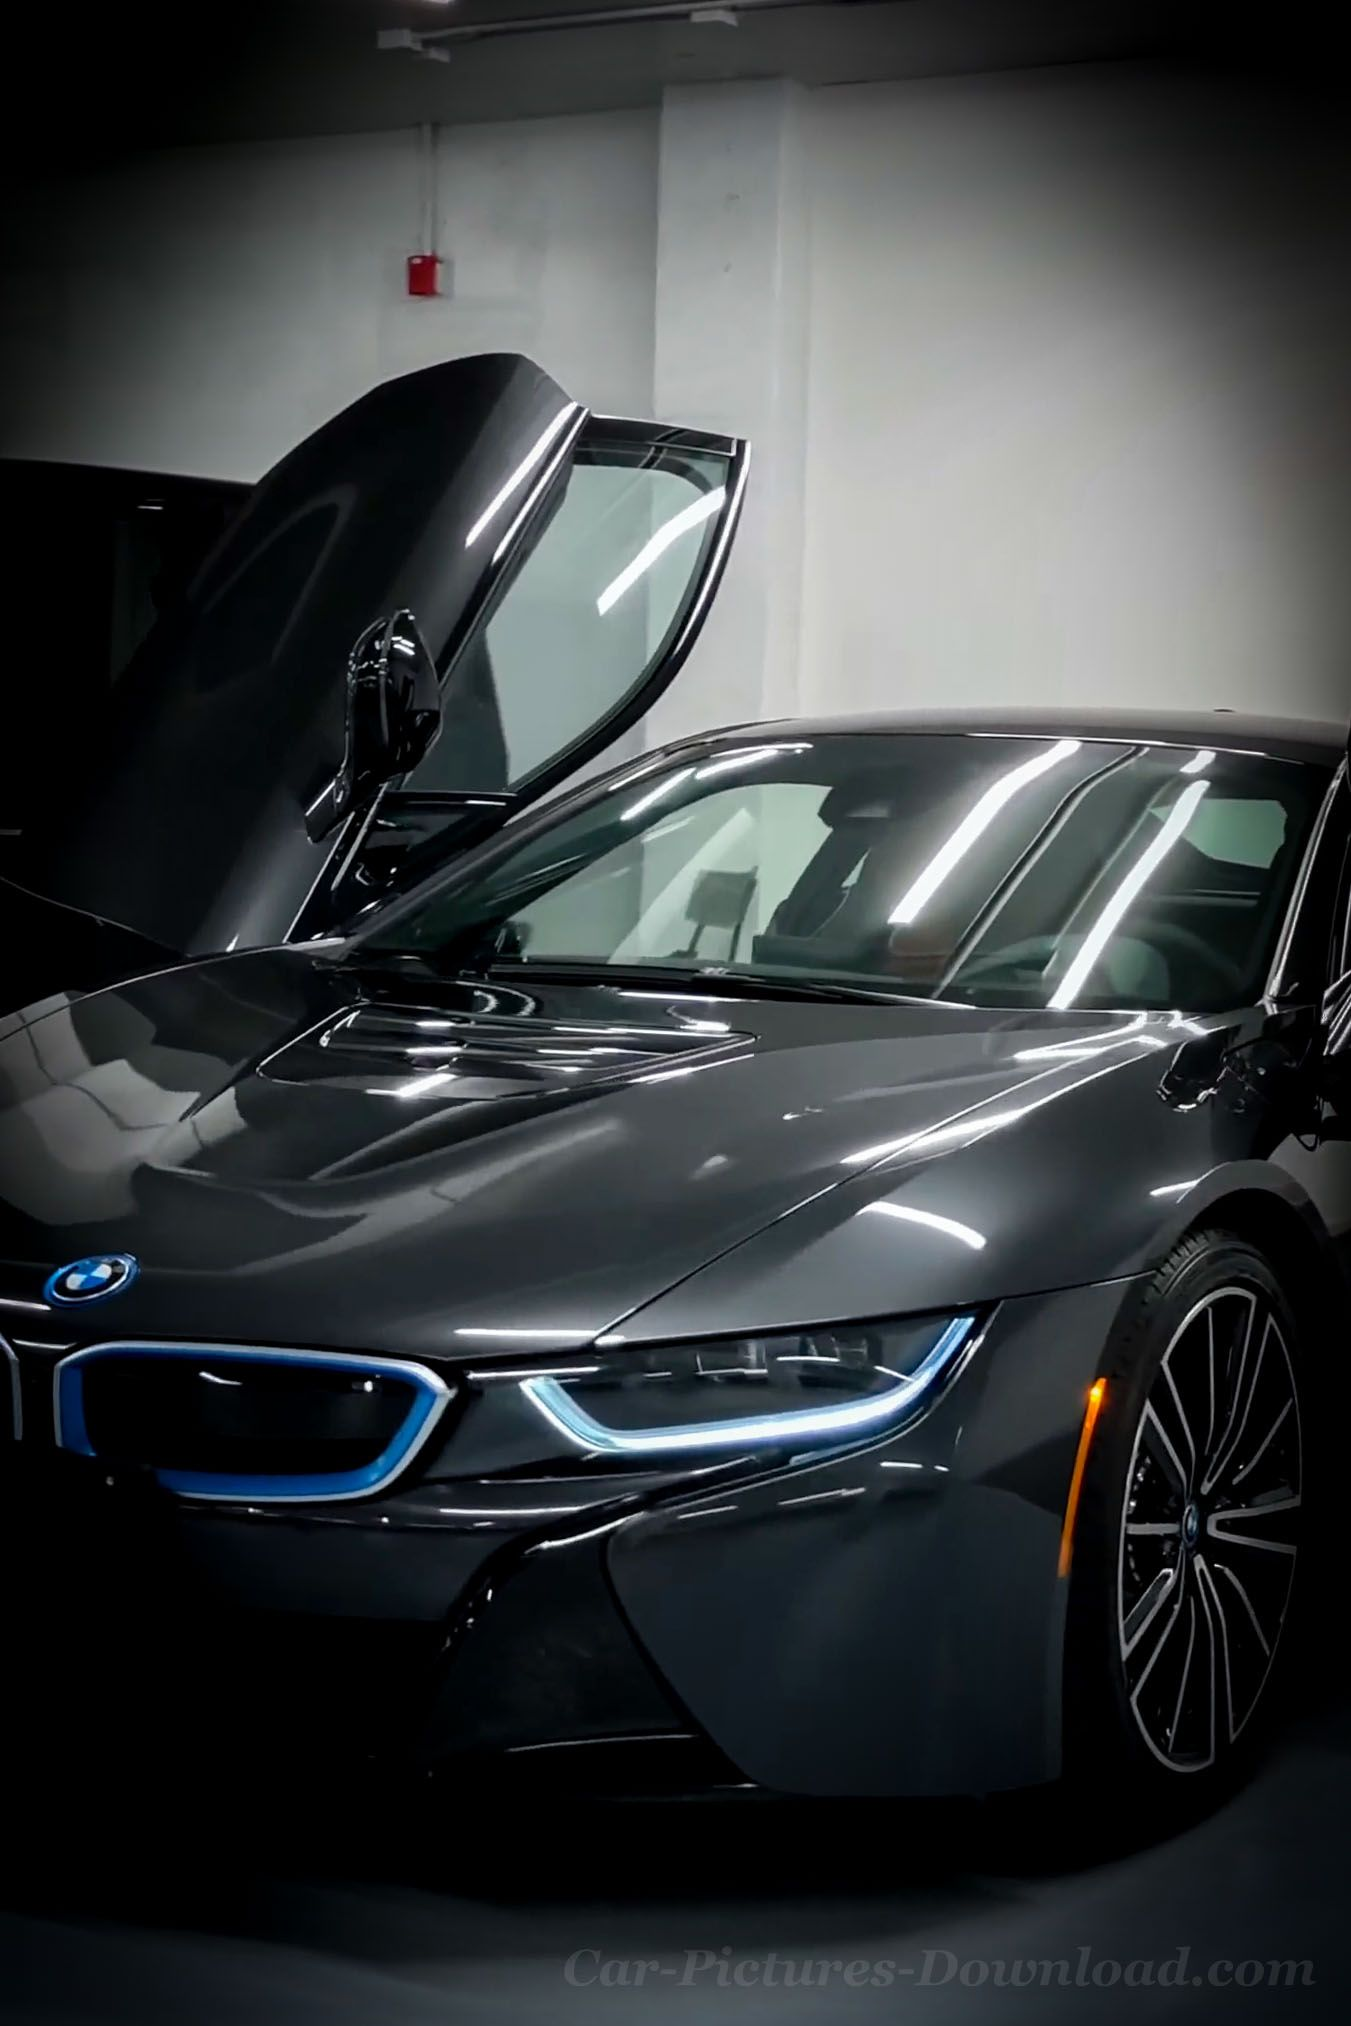 Black Bmw I8 Wallpapers Top Free Black Bmw I8 Backgrounds Wallpaperaccess